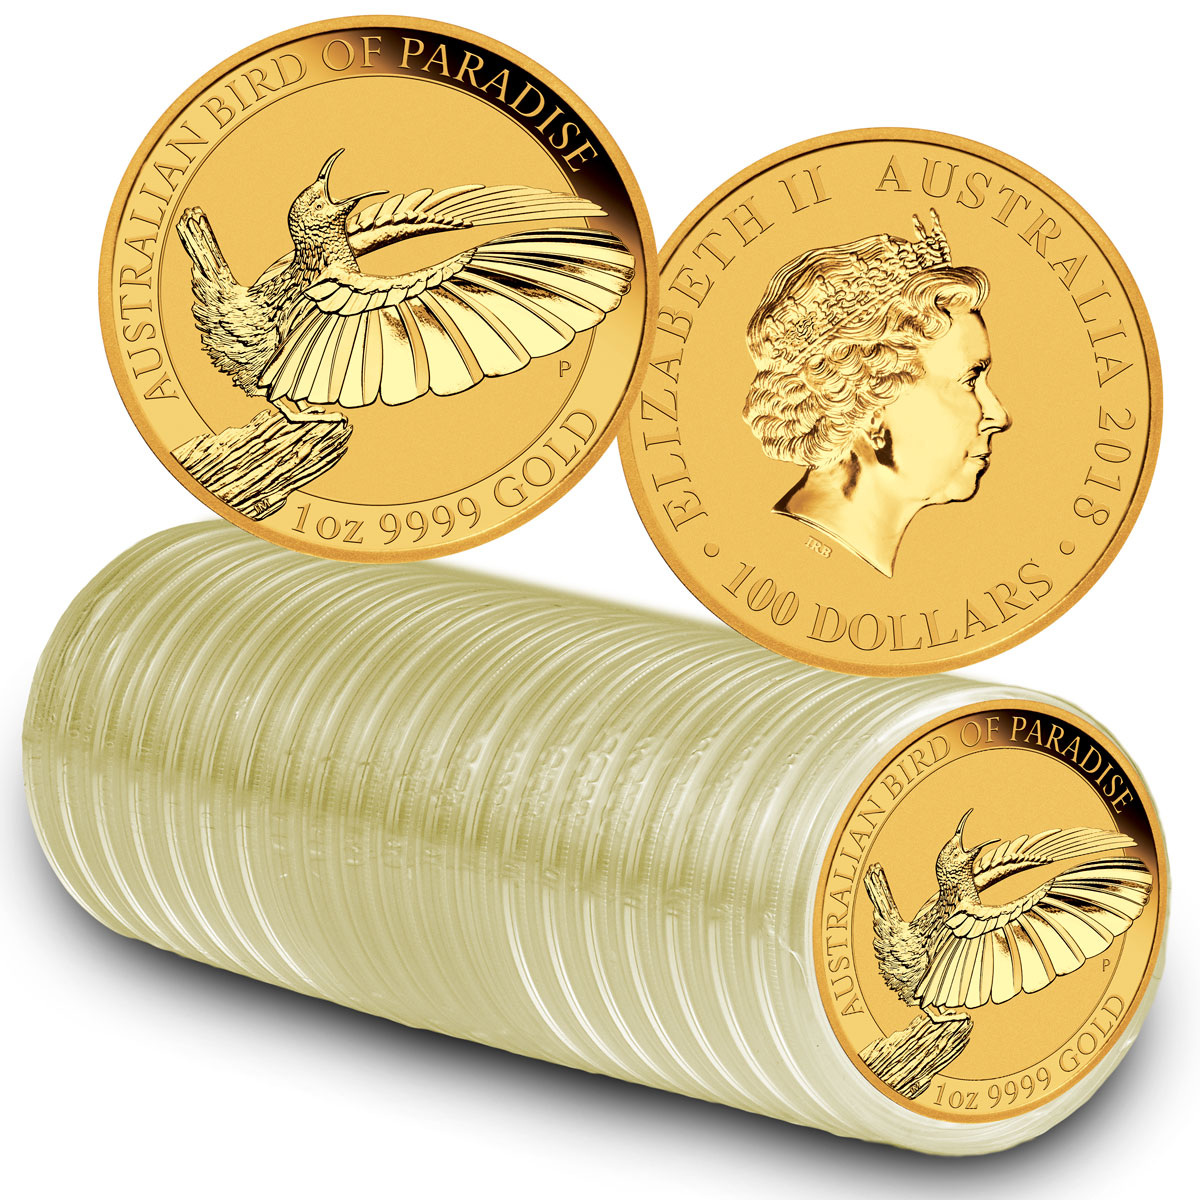 Roll of 20 - 2018-P Australia 1 oz Gold Bird of Paradise $100 Coins GEM BU